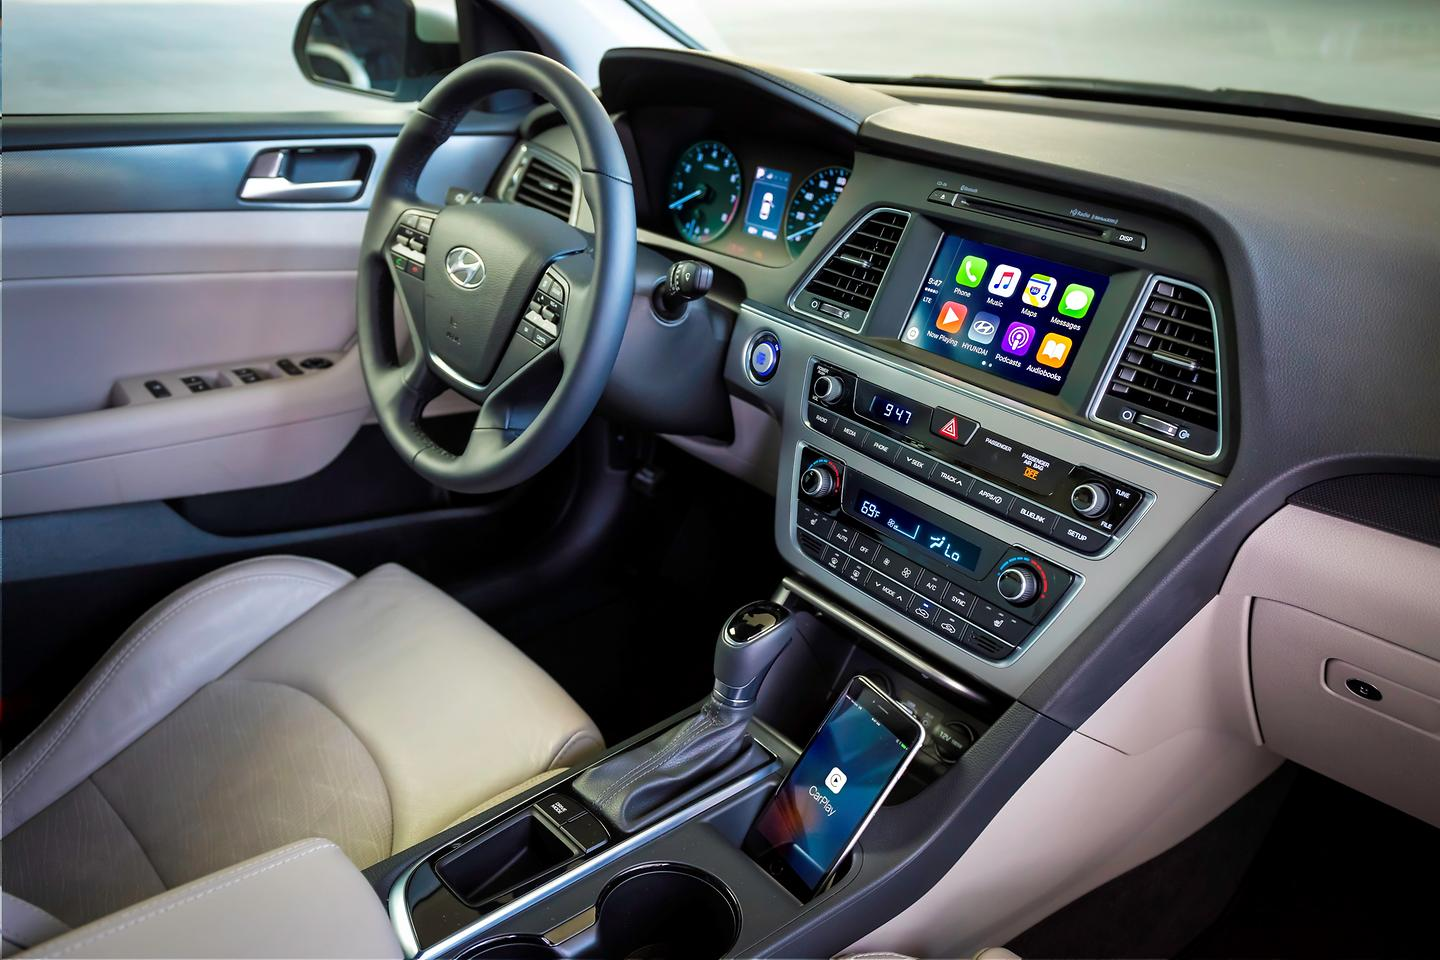 Connectivity features include apple carplay and android auto - Apple Carplay And Android Auto Integration Available On Affordable Sedan